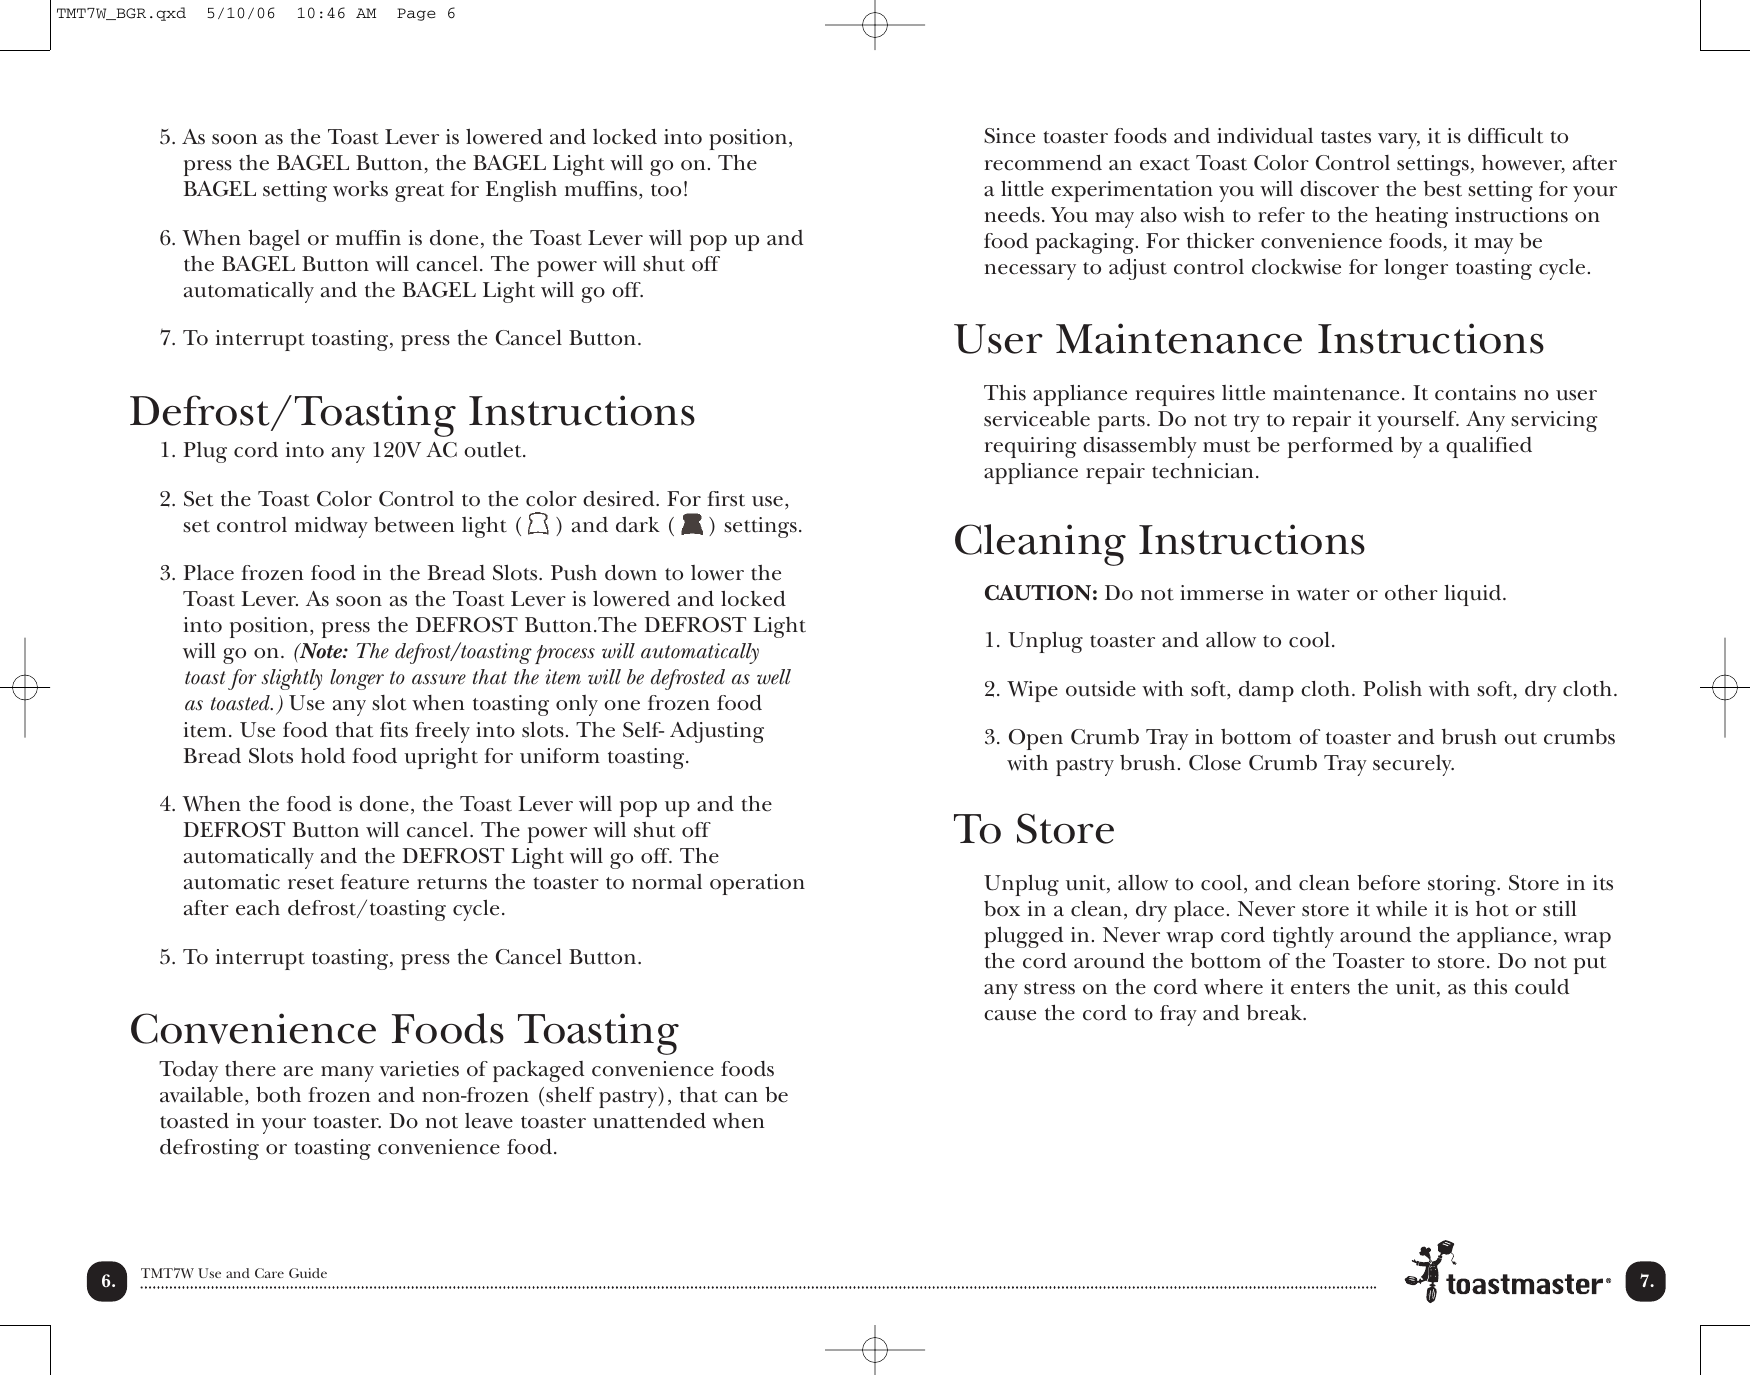 Page 8 of 12 - Toastmaster Toastmaster-Tmt7W-Users-Manual- T2050 Manual  Toastmaster-tmt7w-users-manual